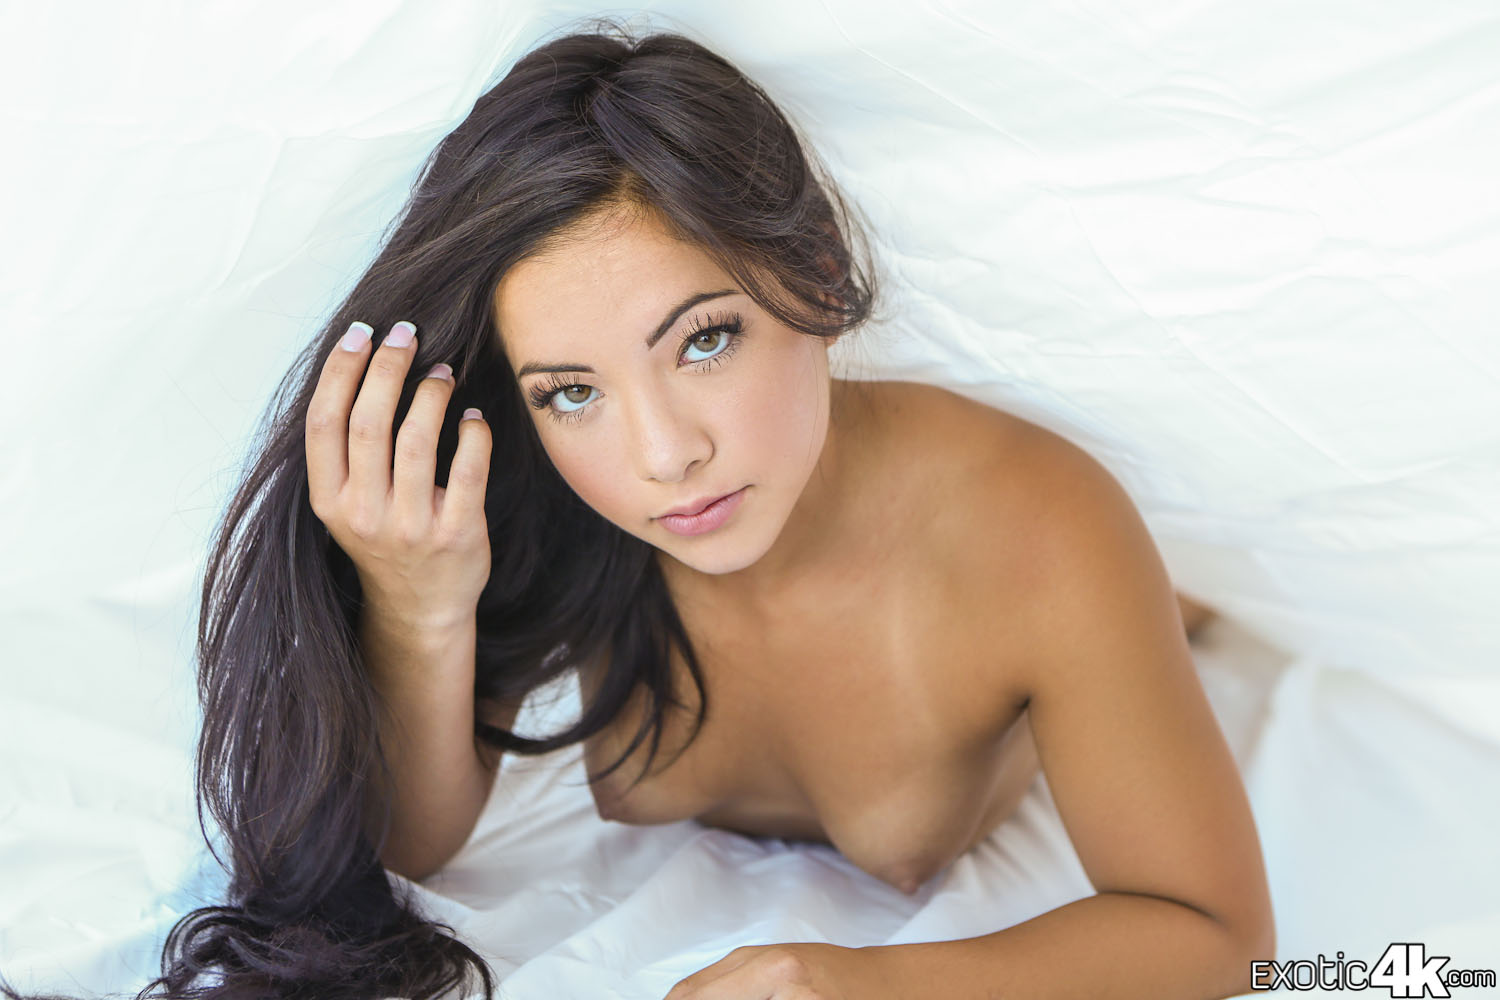 nude and sexy pics of female pornstars